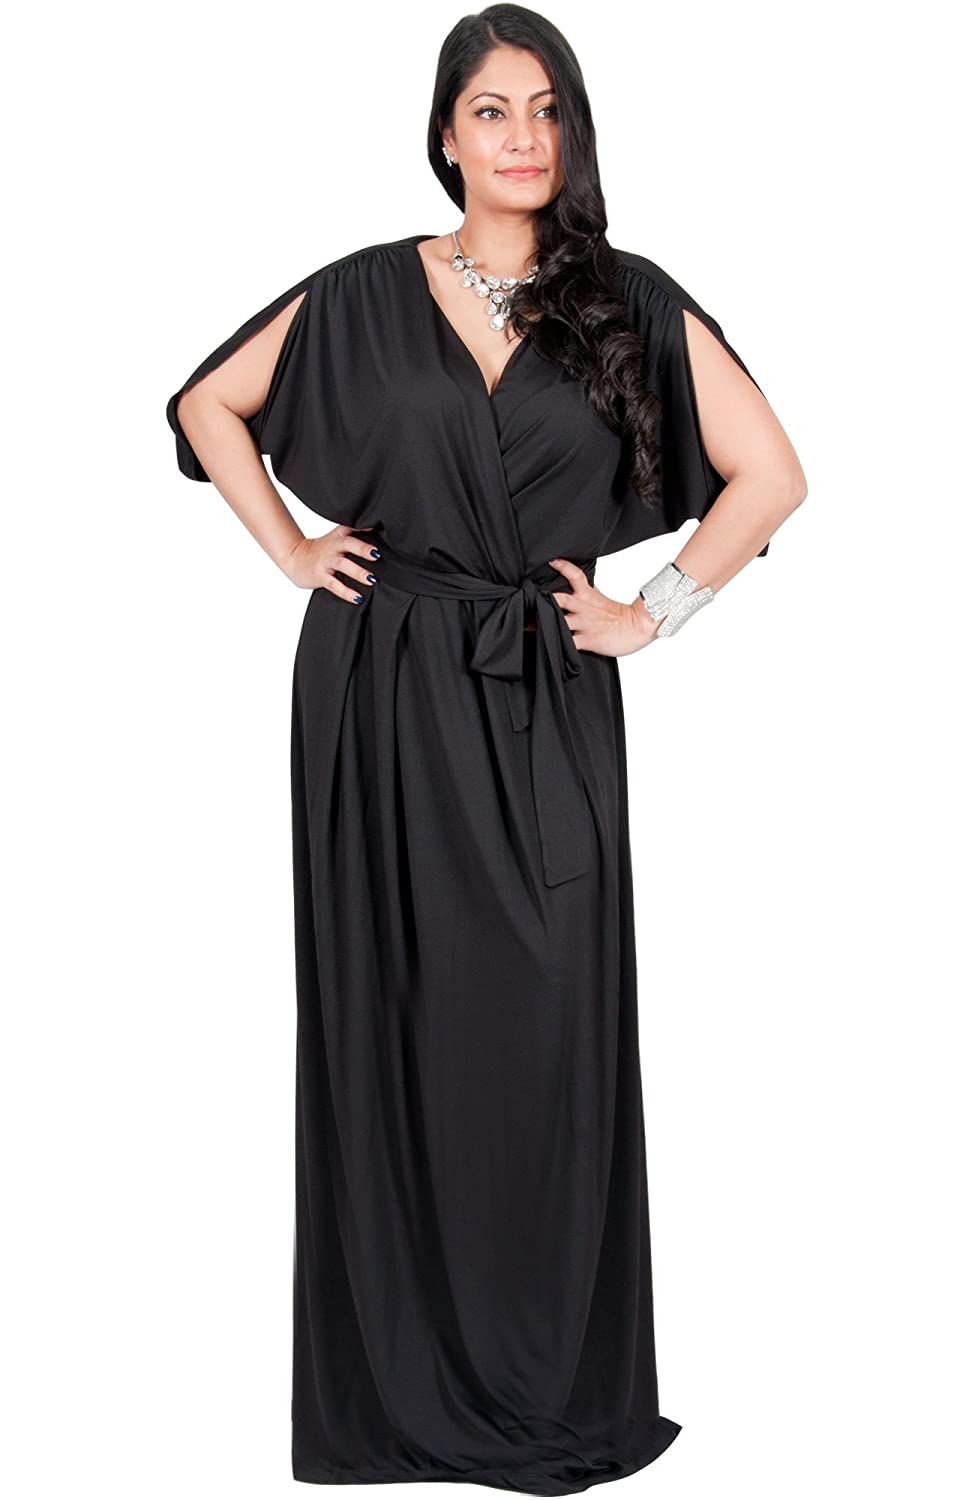 a15d5f509a2 GARMENT CARE - Hand or machine washable. Can be dry-cleaned if desired. PLUS  SIZE - This great plus size maxi dress is perfect for women with ...